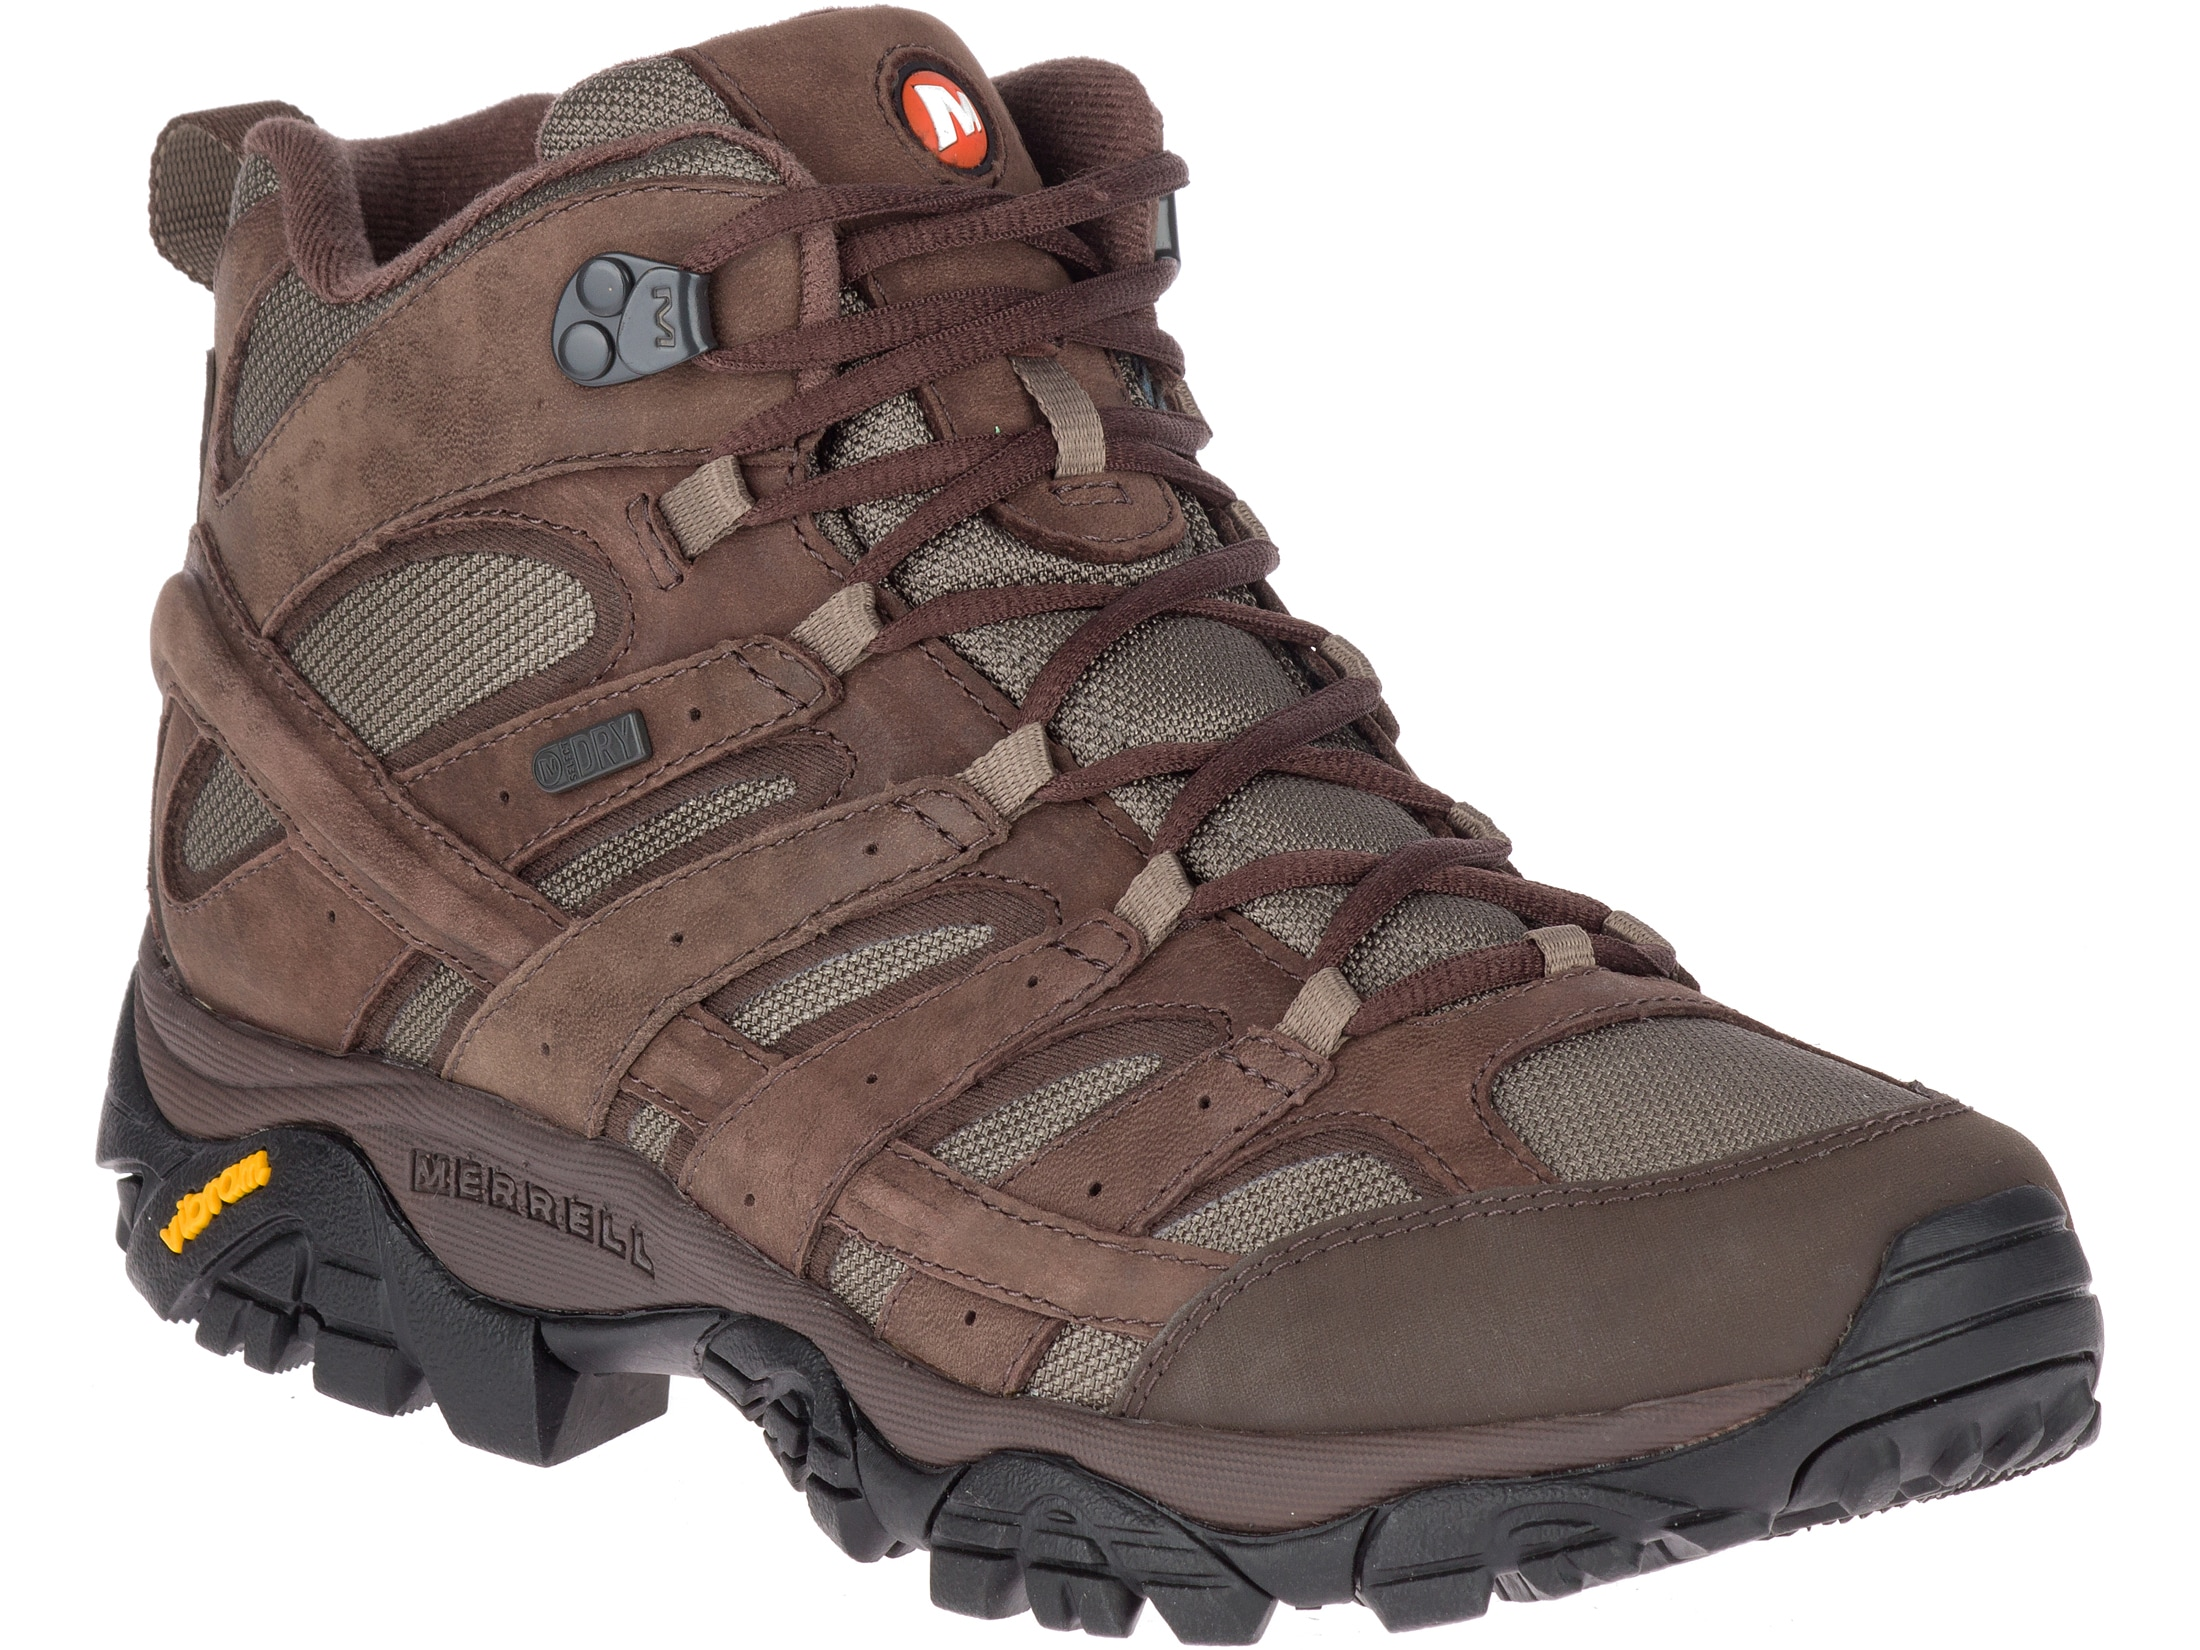 b120c253f6d Merrell Moab 2 Smooth Mid 5 Hiking Boots Leather/Nylon Bracken Men's